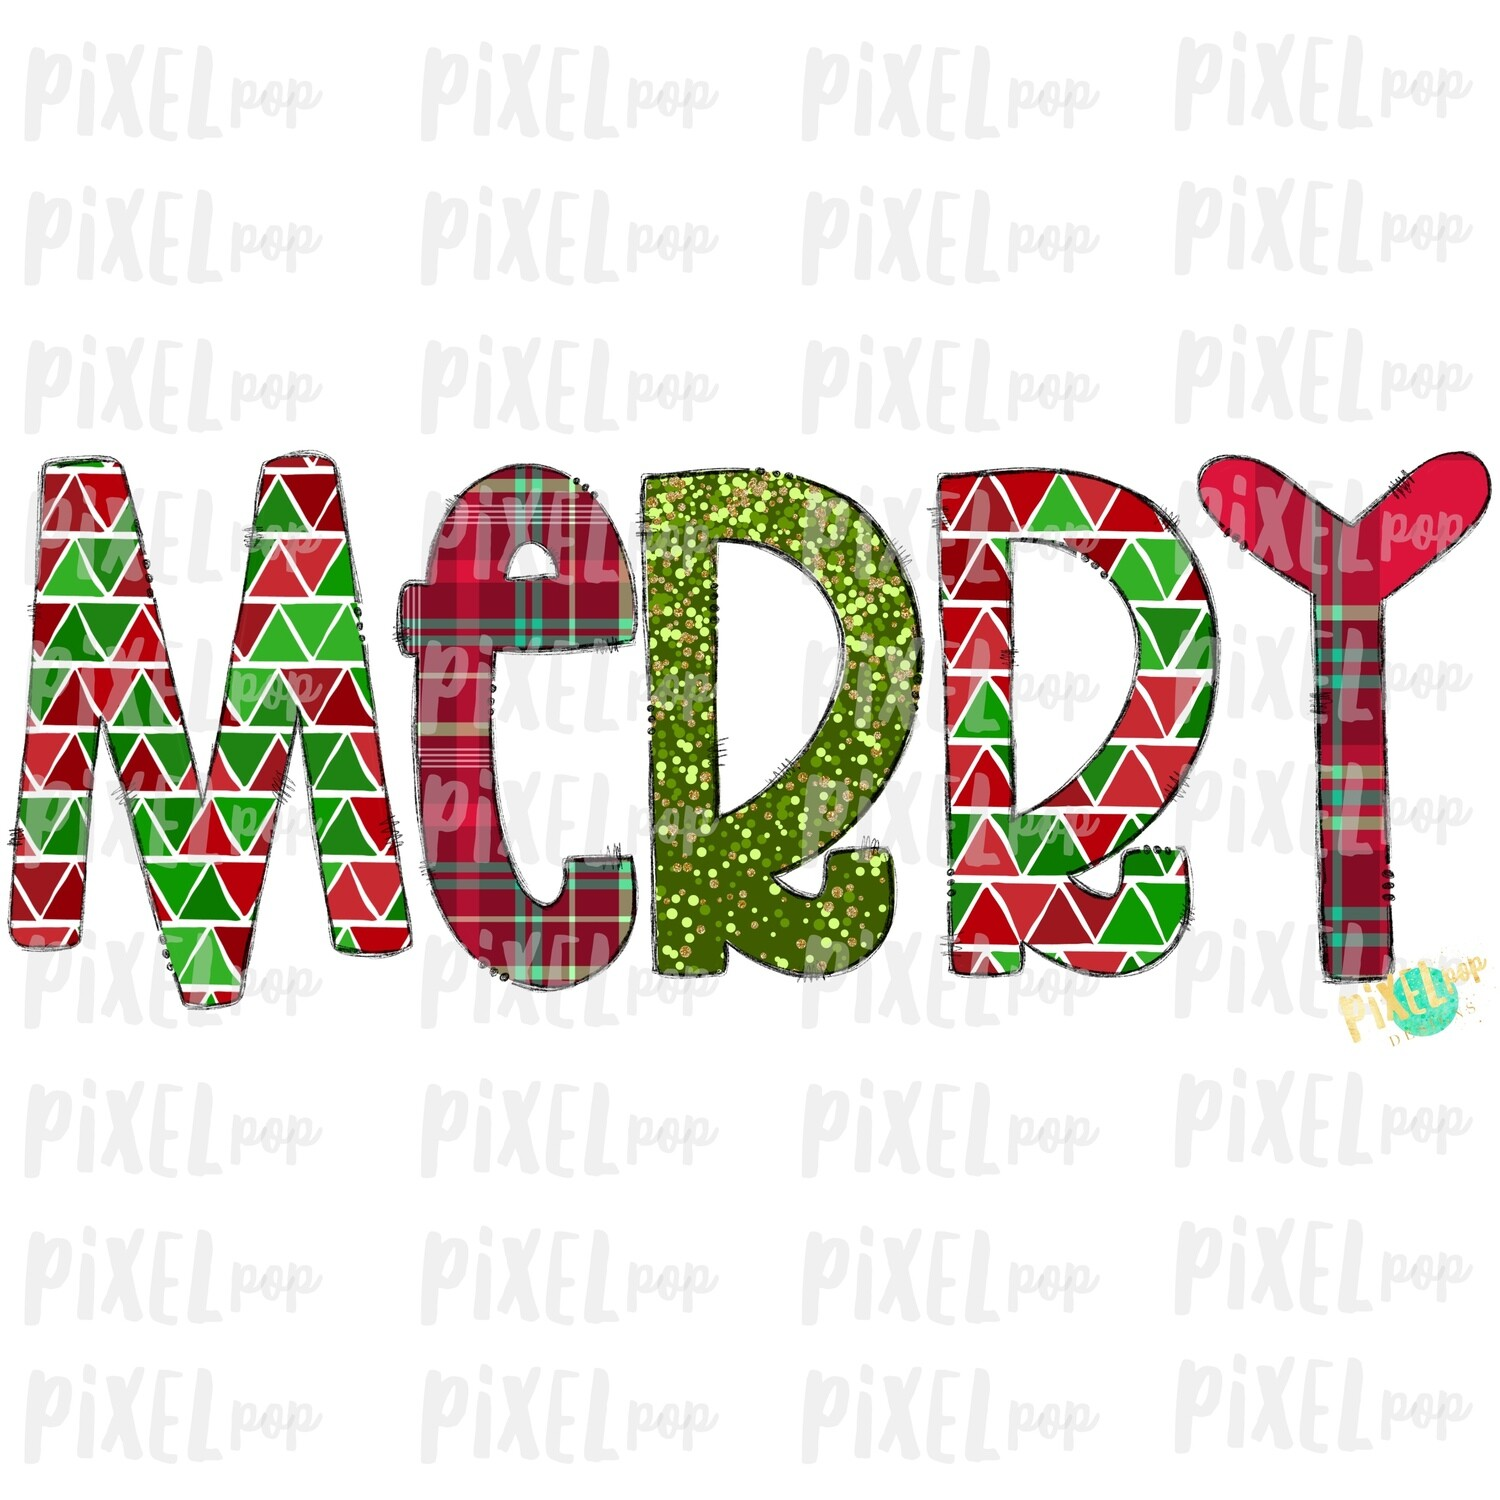 Merry Christmas Plaid Patterened Word Sublimation PNG | Tree Farm Art | Hand Drawn Design | Digital Download | Printable Artwork | Art